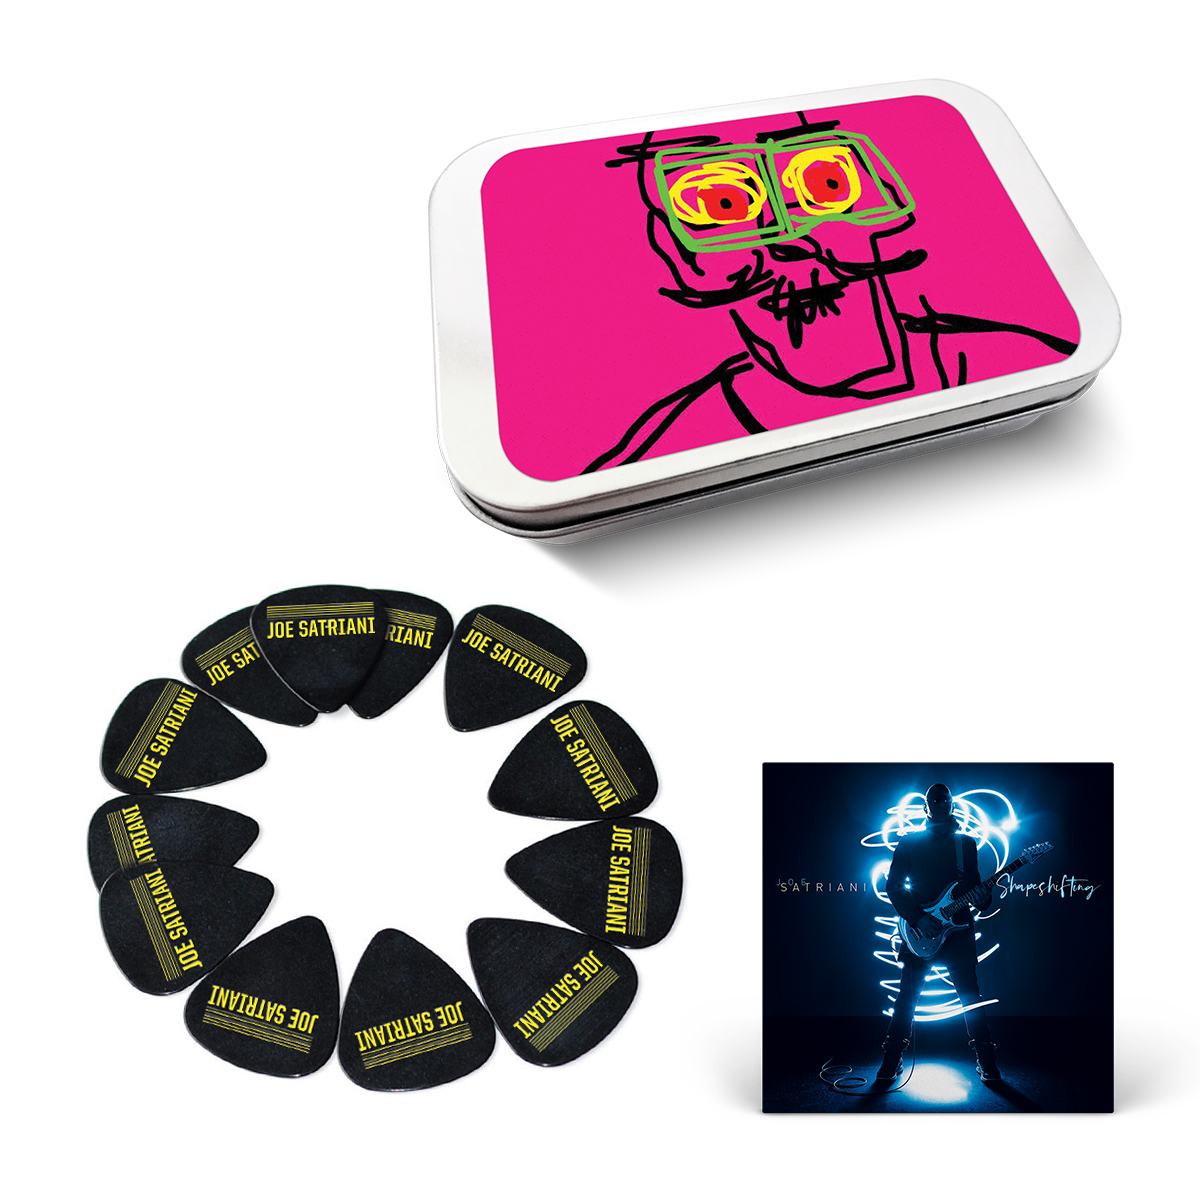 Joe Satriani: Shapeshifting Album + Original Artwork Guitar Pick Tin